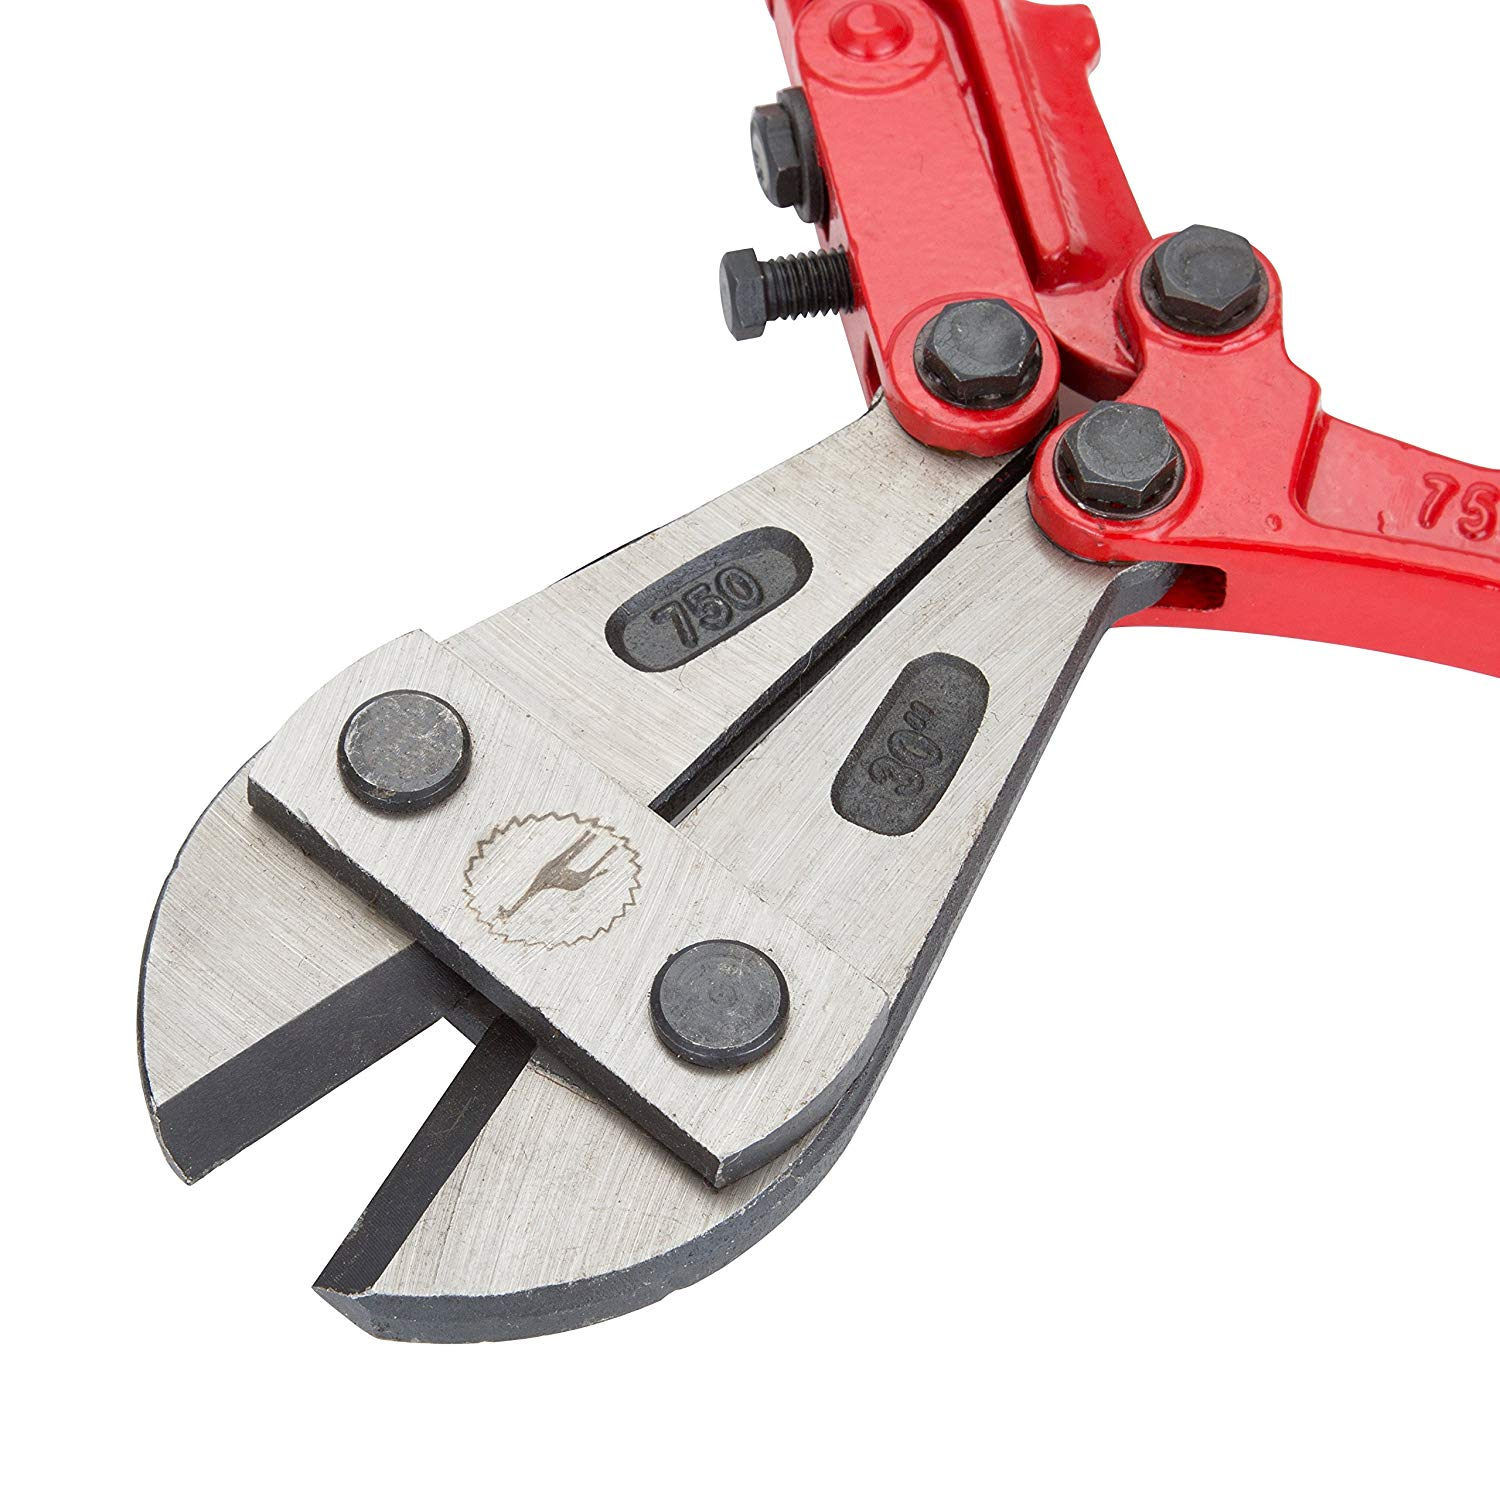 Neiko 00562A 30-Inch Heavy-Duty Bolt Wire and Pad Lock Cutter 4000-Pound Chrome-Molybdenum Blades